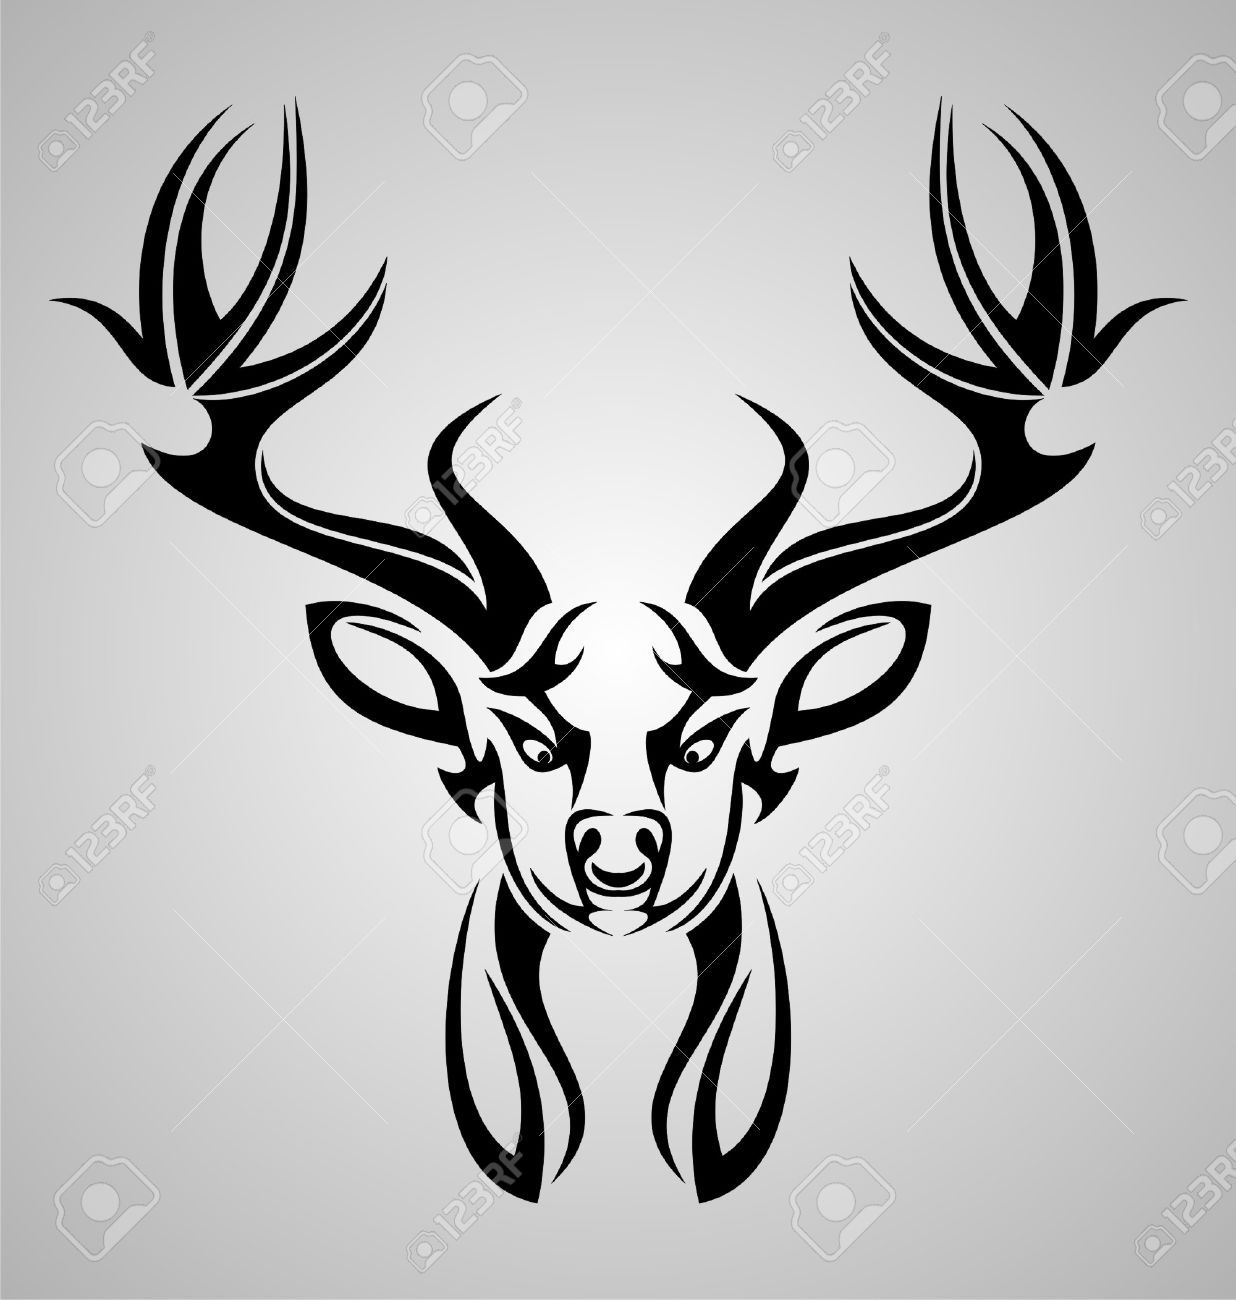 the gallery for gt tribal deer head design stylized